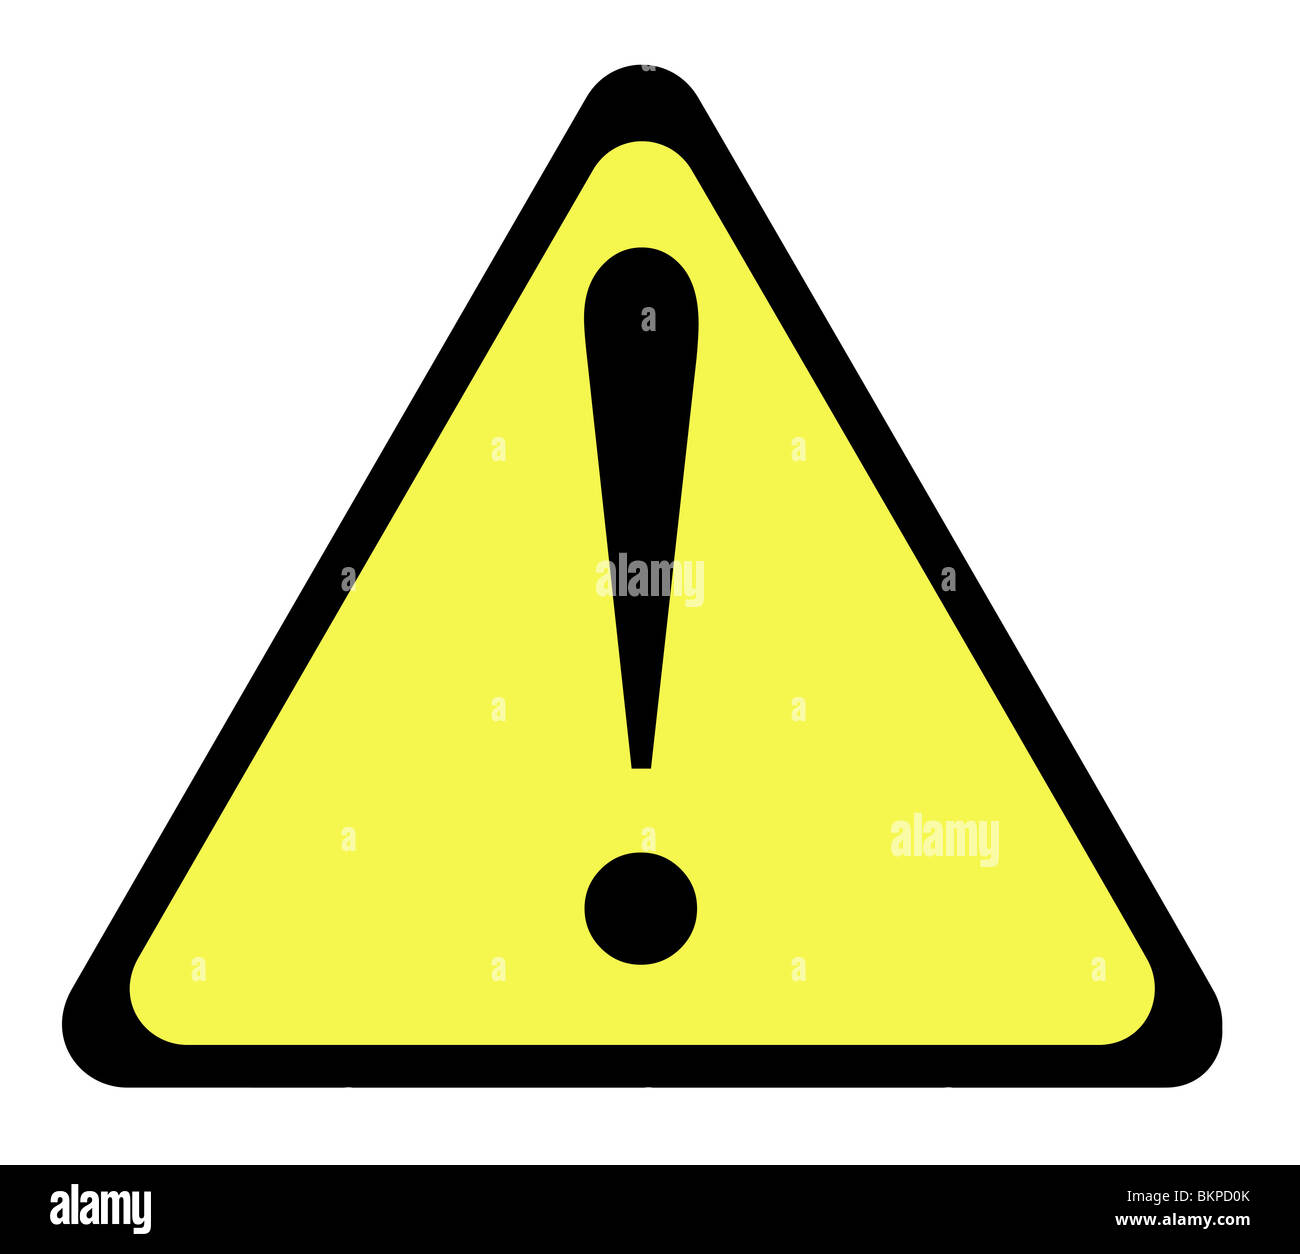 Yellow warning triangle sign with exclamation mark, isolated on white background. - Stock Image